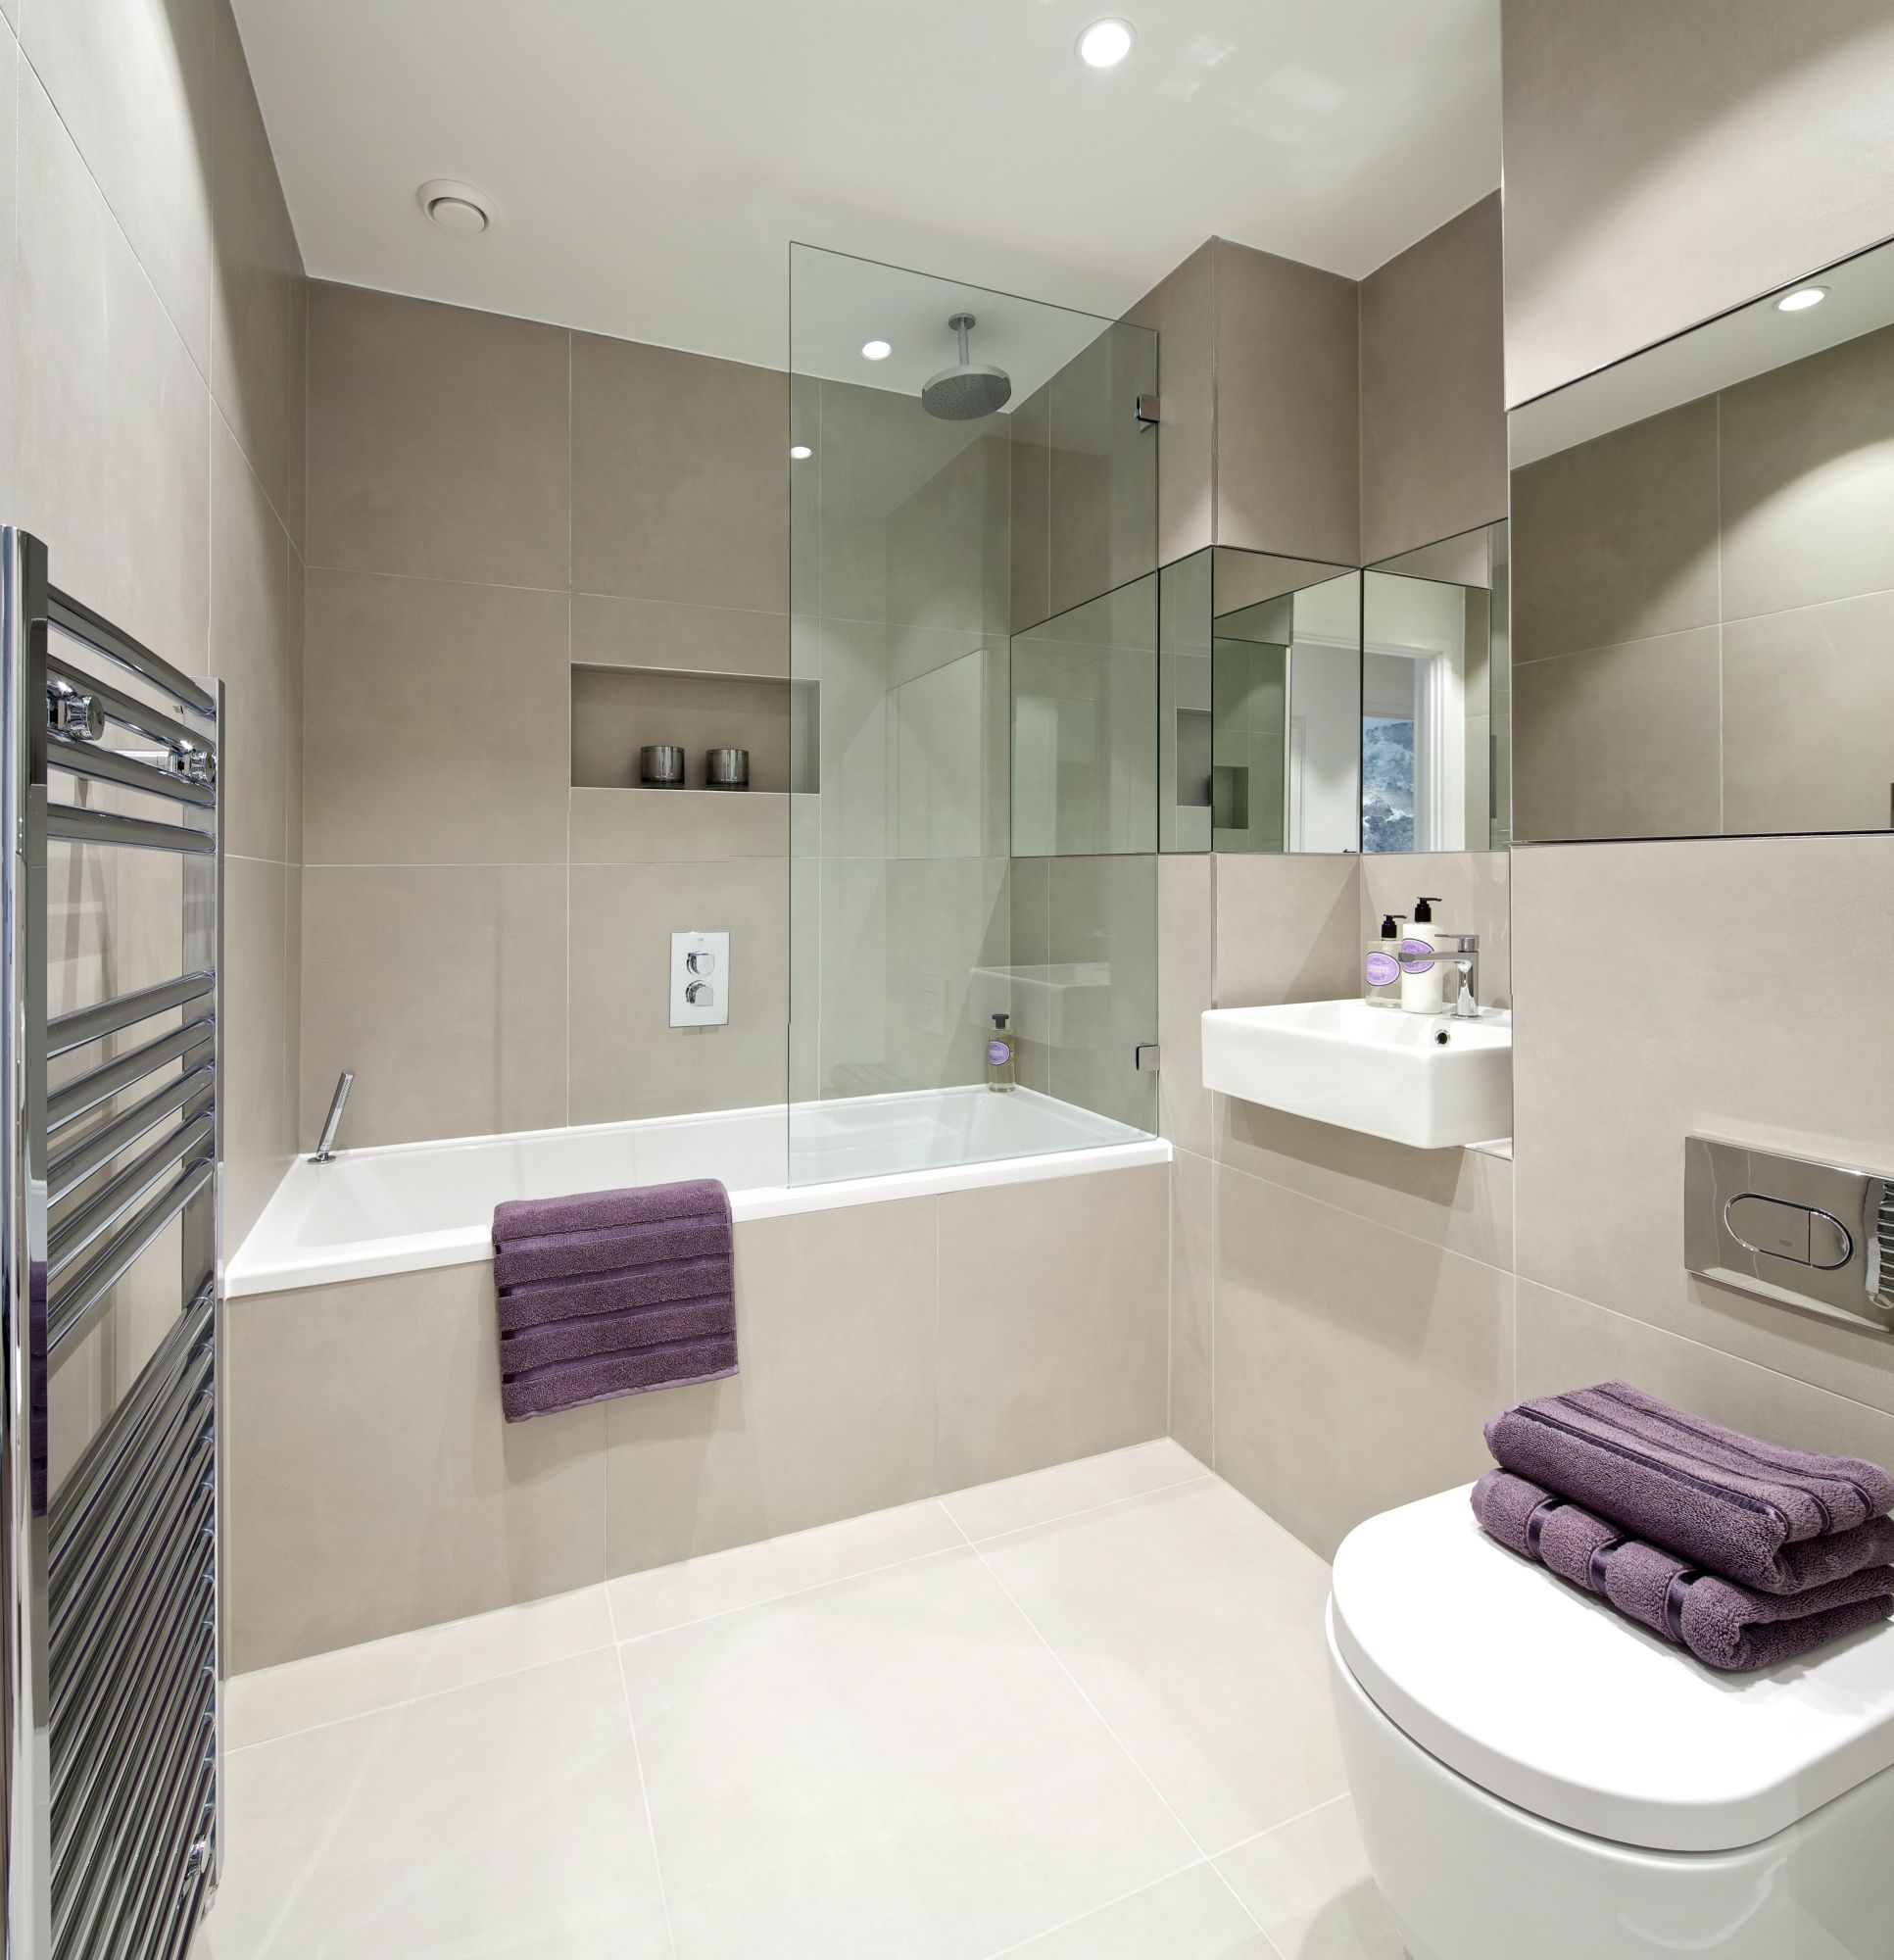 Stunning home interiors bathroom another stunning show home design by suna interior design Interior design for apartment bathroom